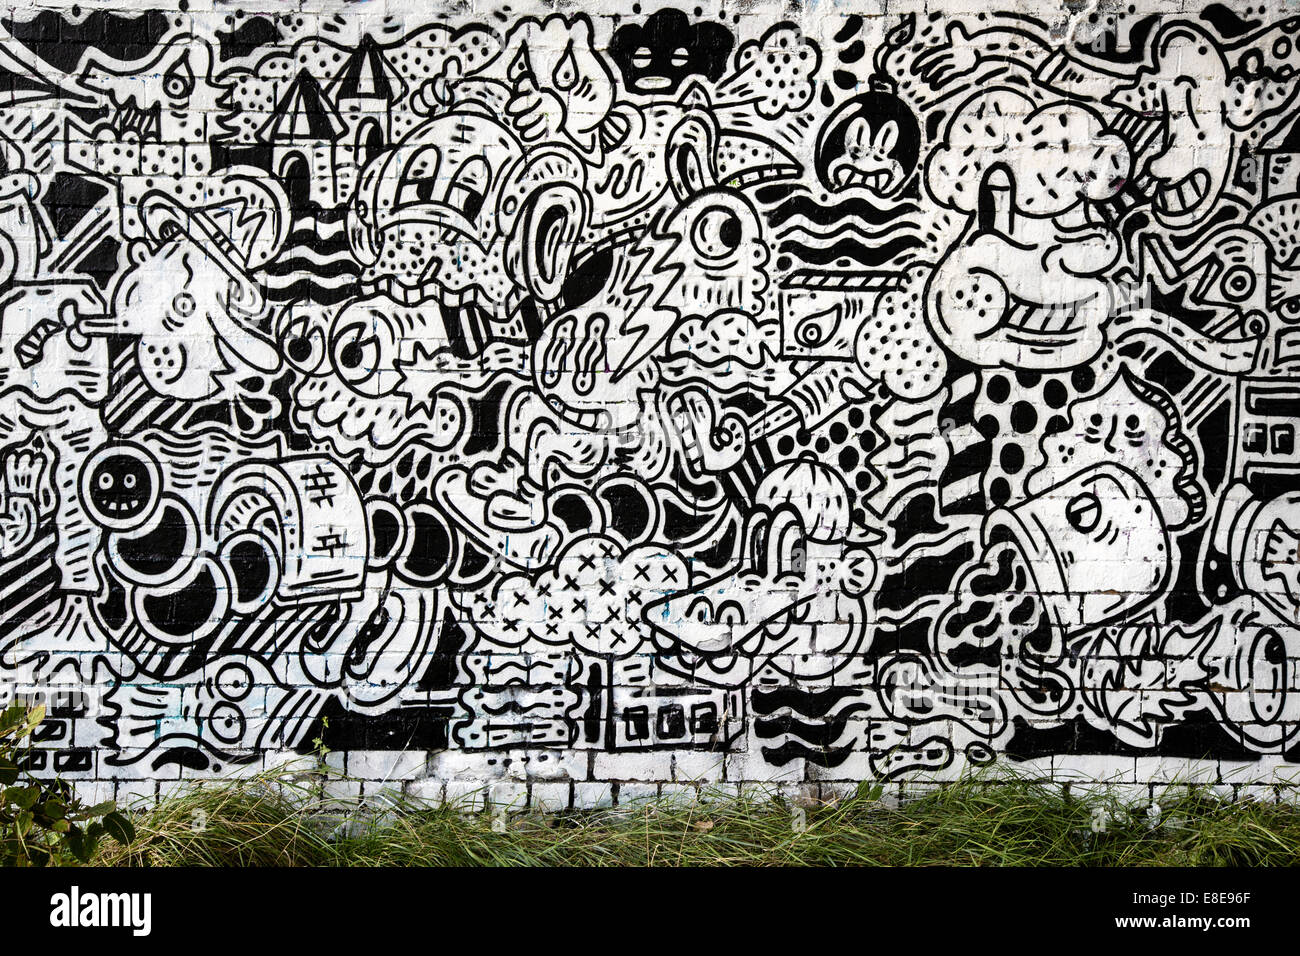 Giant Wall Murals Giant Black And White Comic Book Graffiti Mural Under A